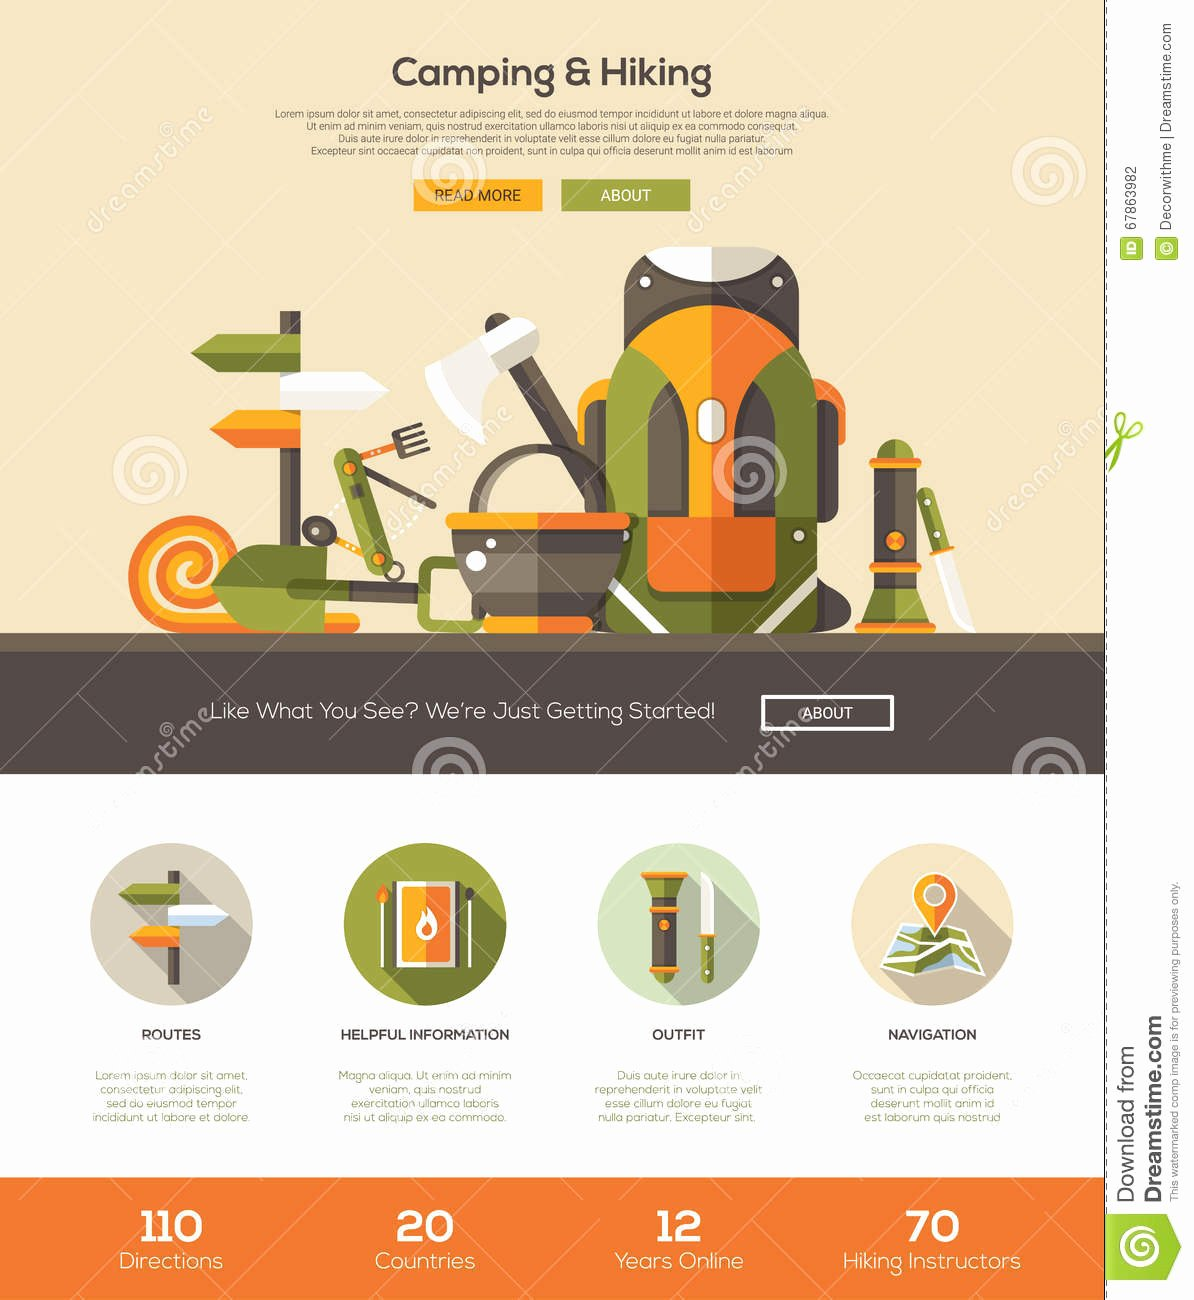 Campground Business Plan Template Best Of Camping Hiking Website Template with Header and Icons